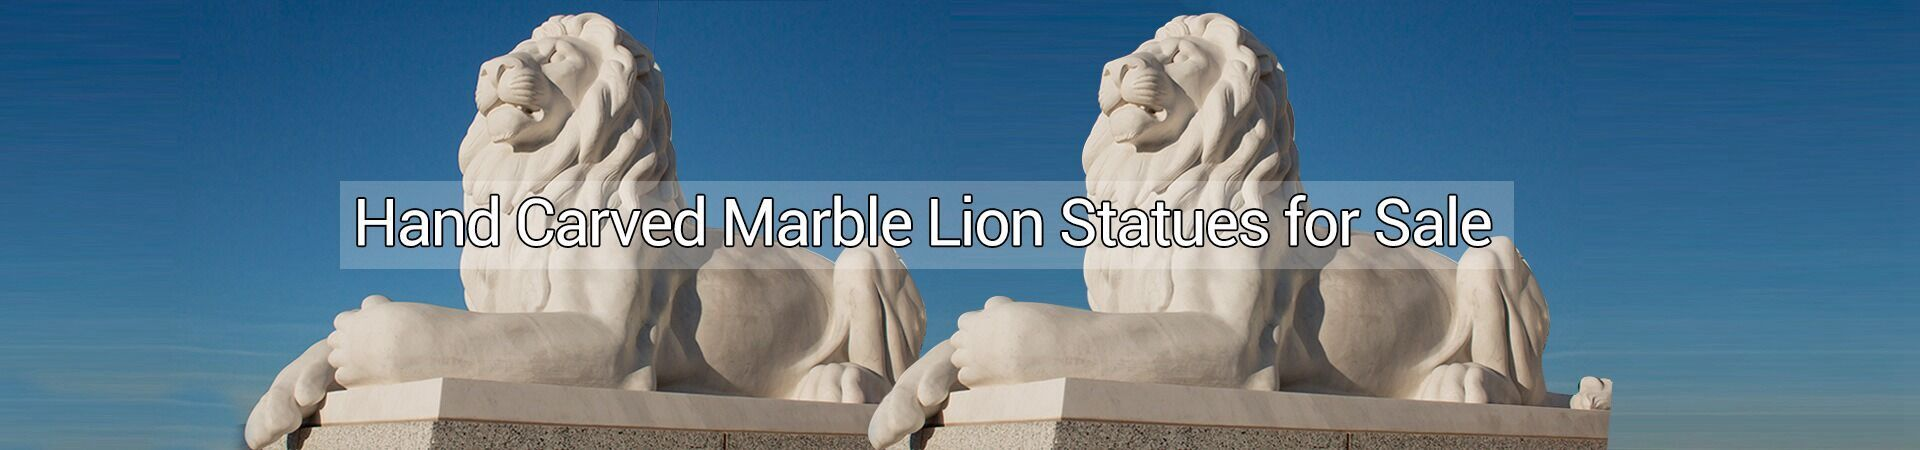 western lion statue at entrance dying marble